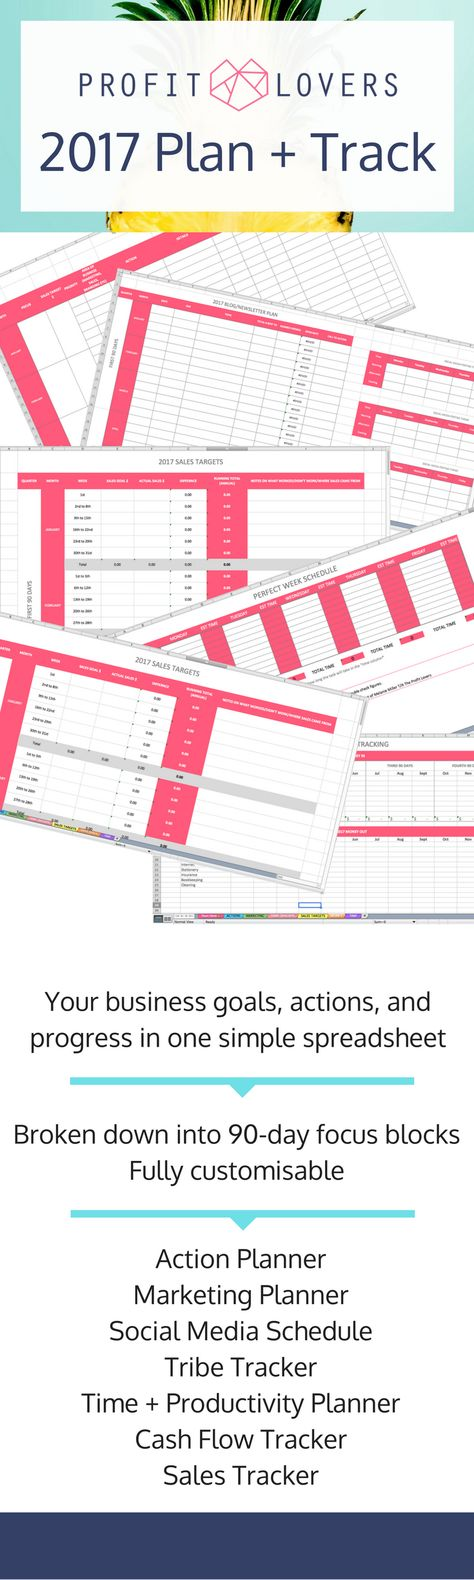 9 best Excel images on Pinterest Knowledge, Productivity and Computers